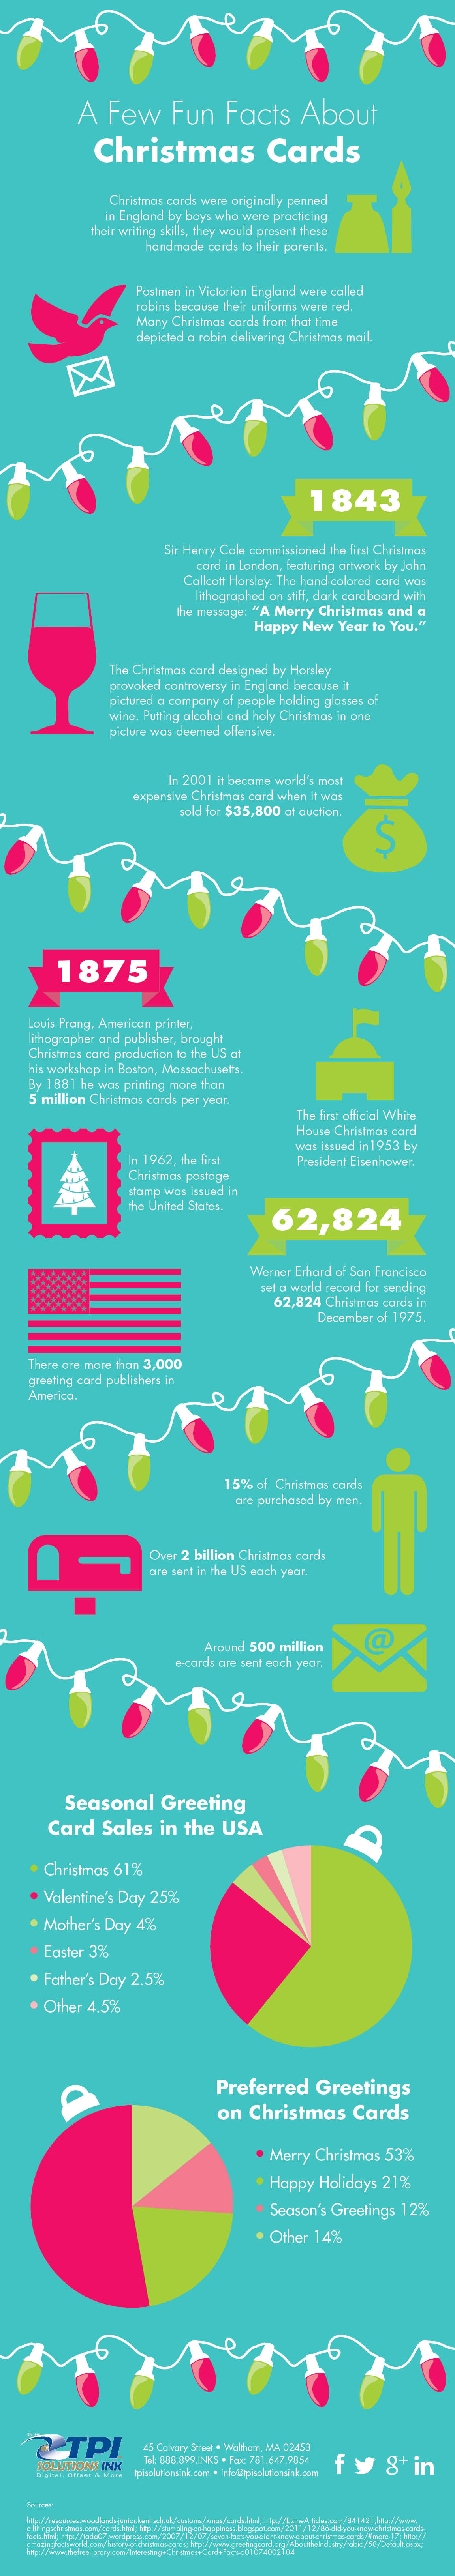 Infographic: Christmas Card Fun Facts